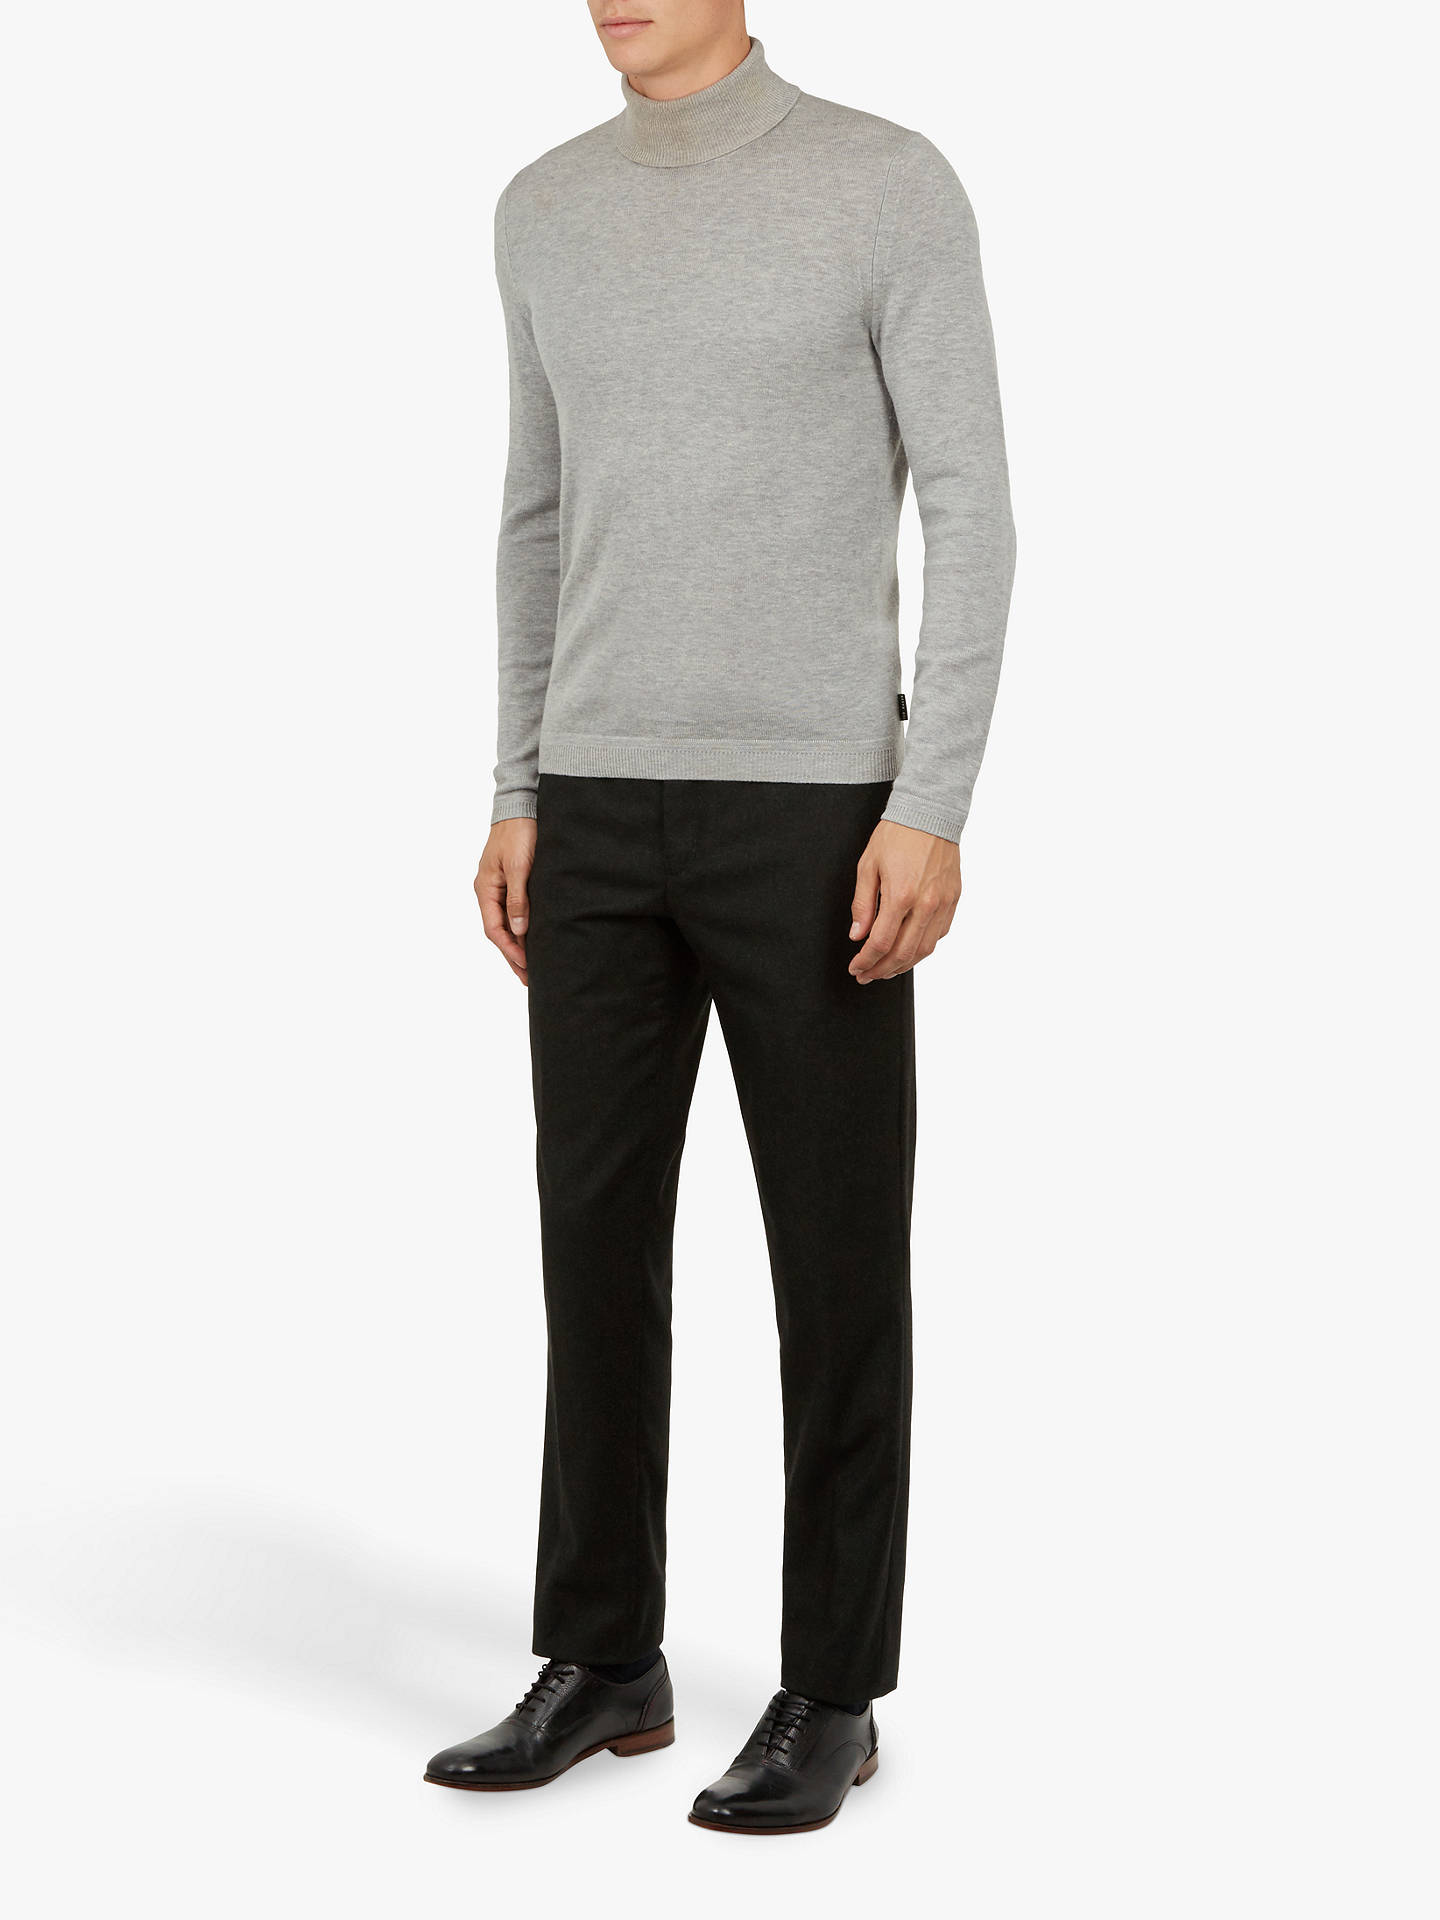 BuyTed Baker Matztro Core Trousers, Dark Green, 32R Online at johnlewis.com